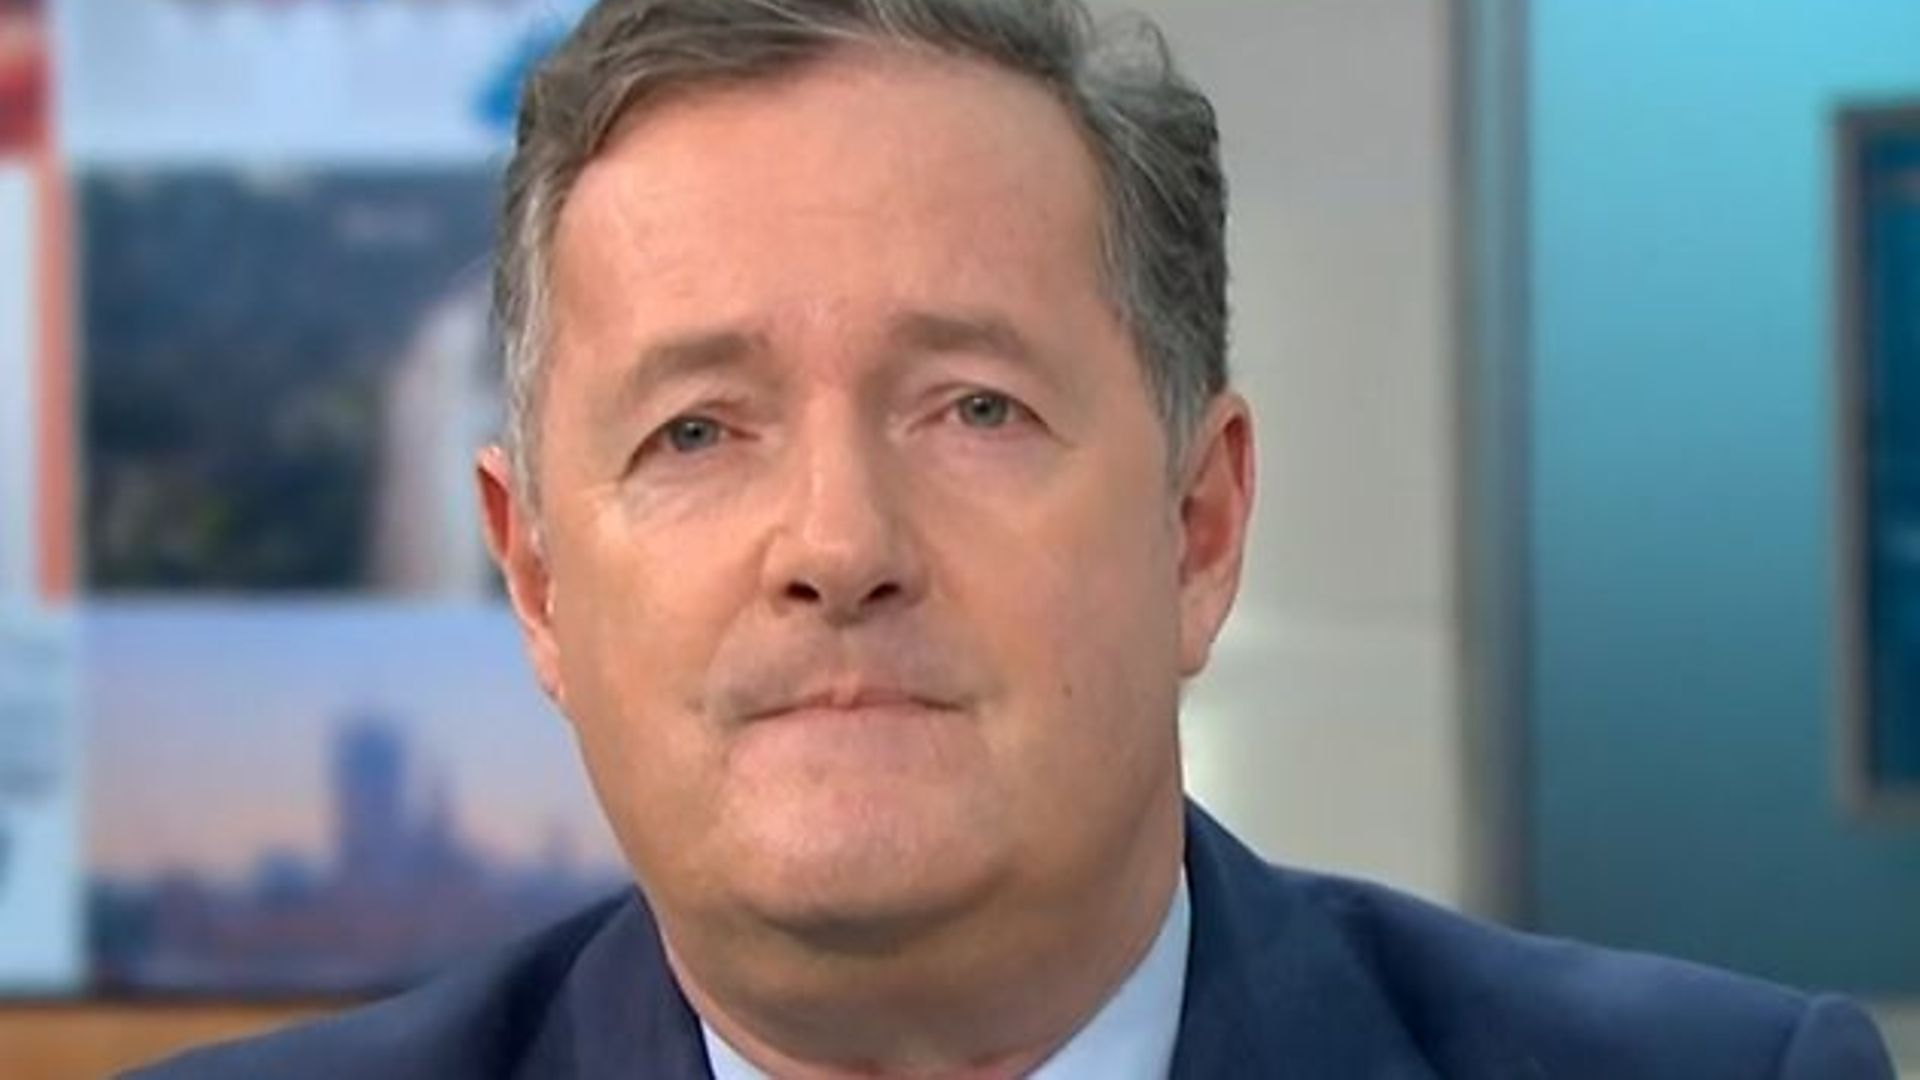 Piers Morgan appears on Good Morning Britain - Credit: ITV